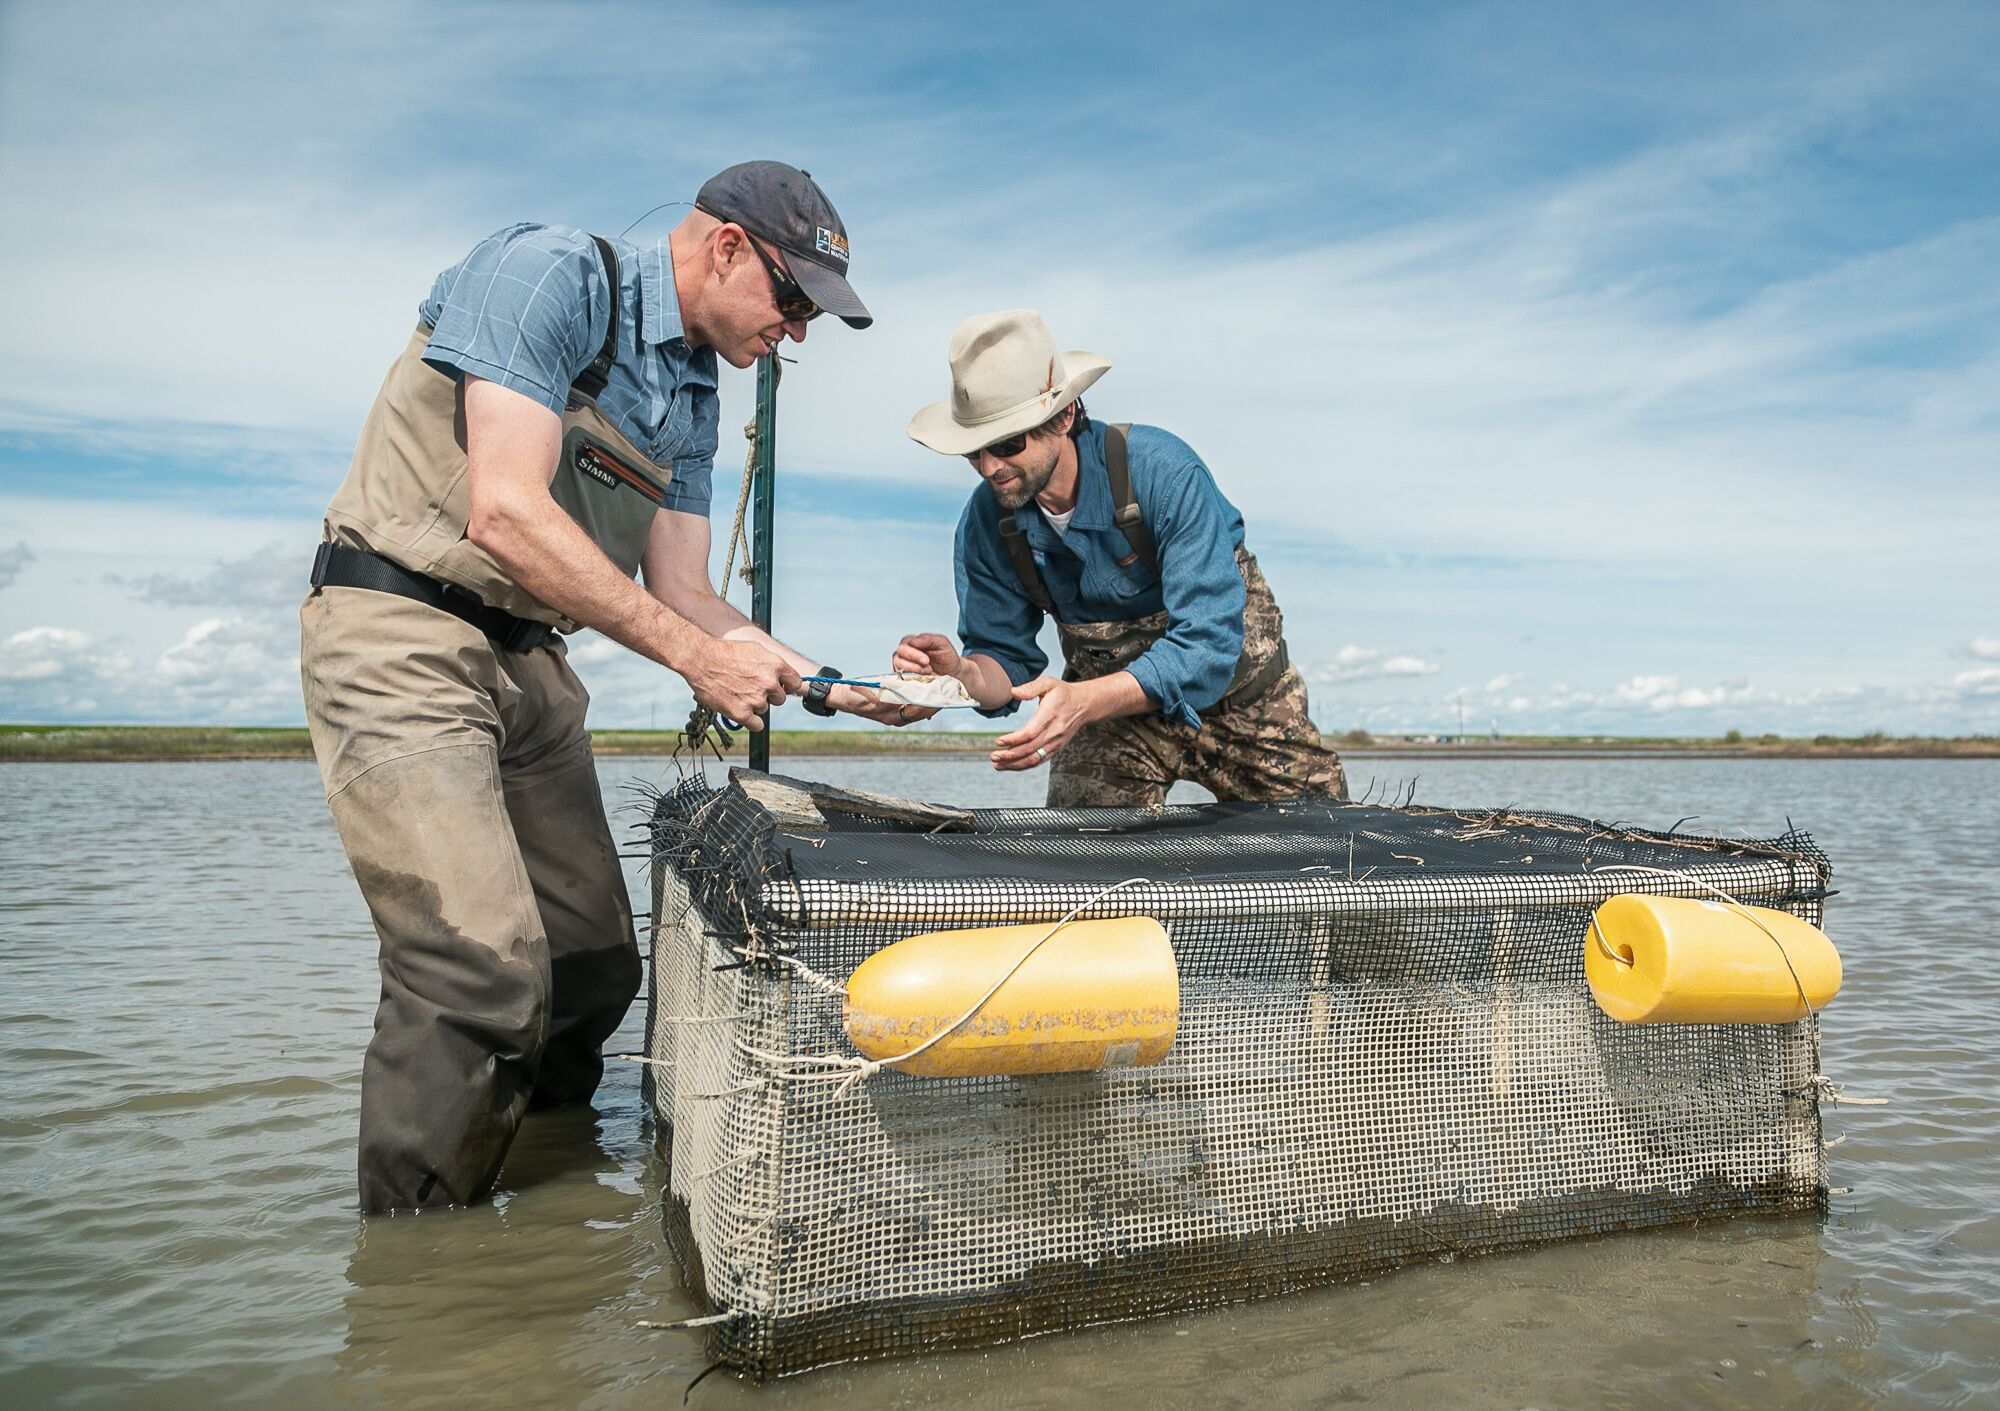 Carson Jeffres from the University of California, Davis and Jacob Katz from California Trout scoop a Chinook salmon fry out of a cage in a flooded rice field at Knaggs Ranch.